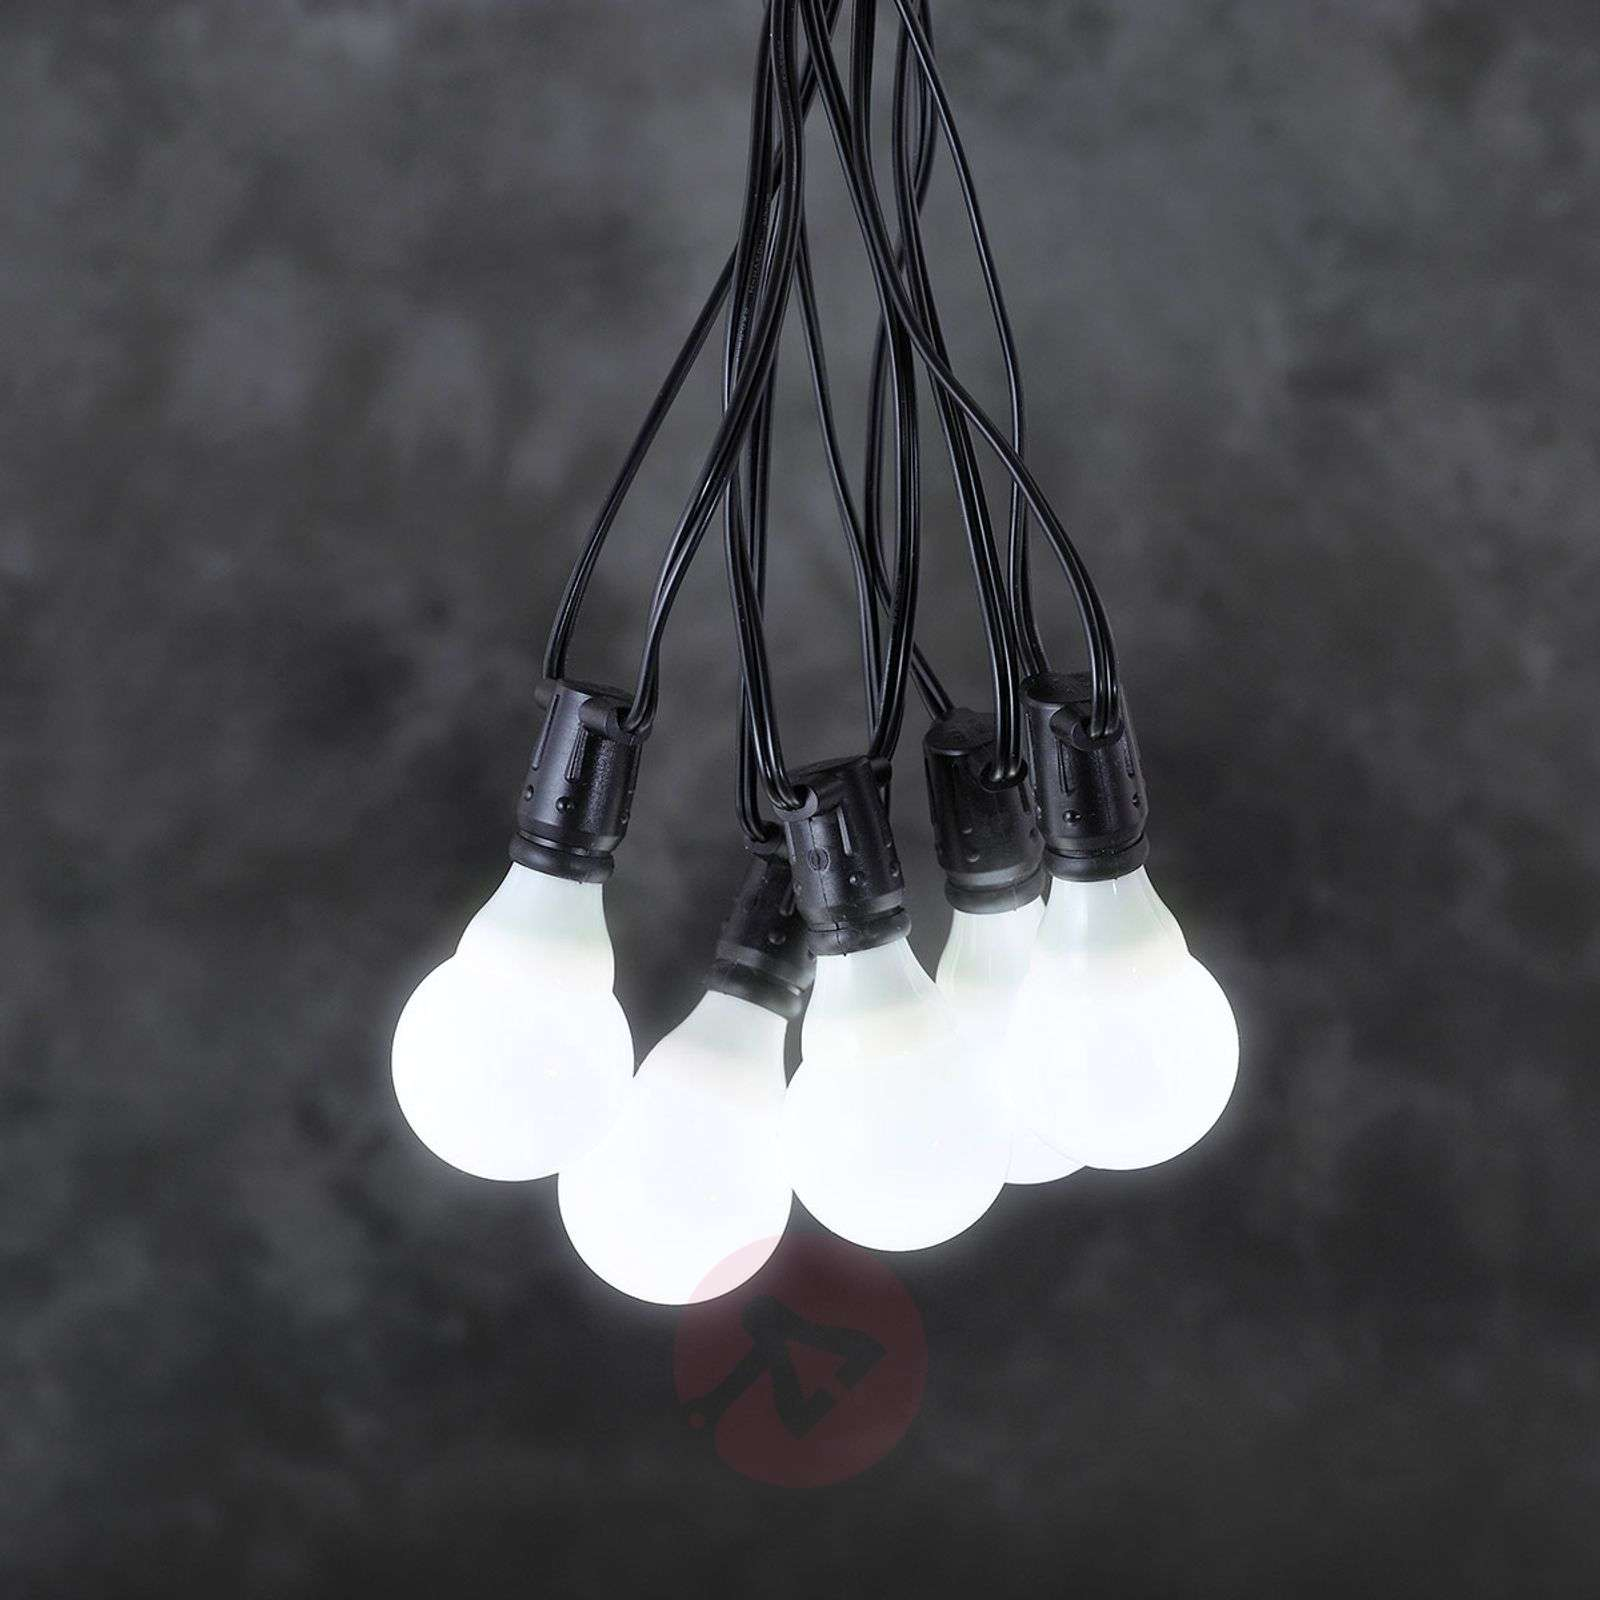 24V-systeem lichtketting voor tuincafé LED E10-5524406X-01